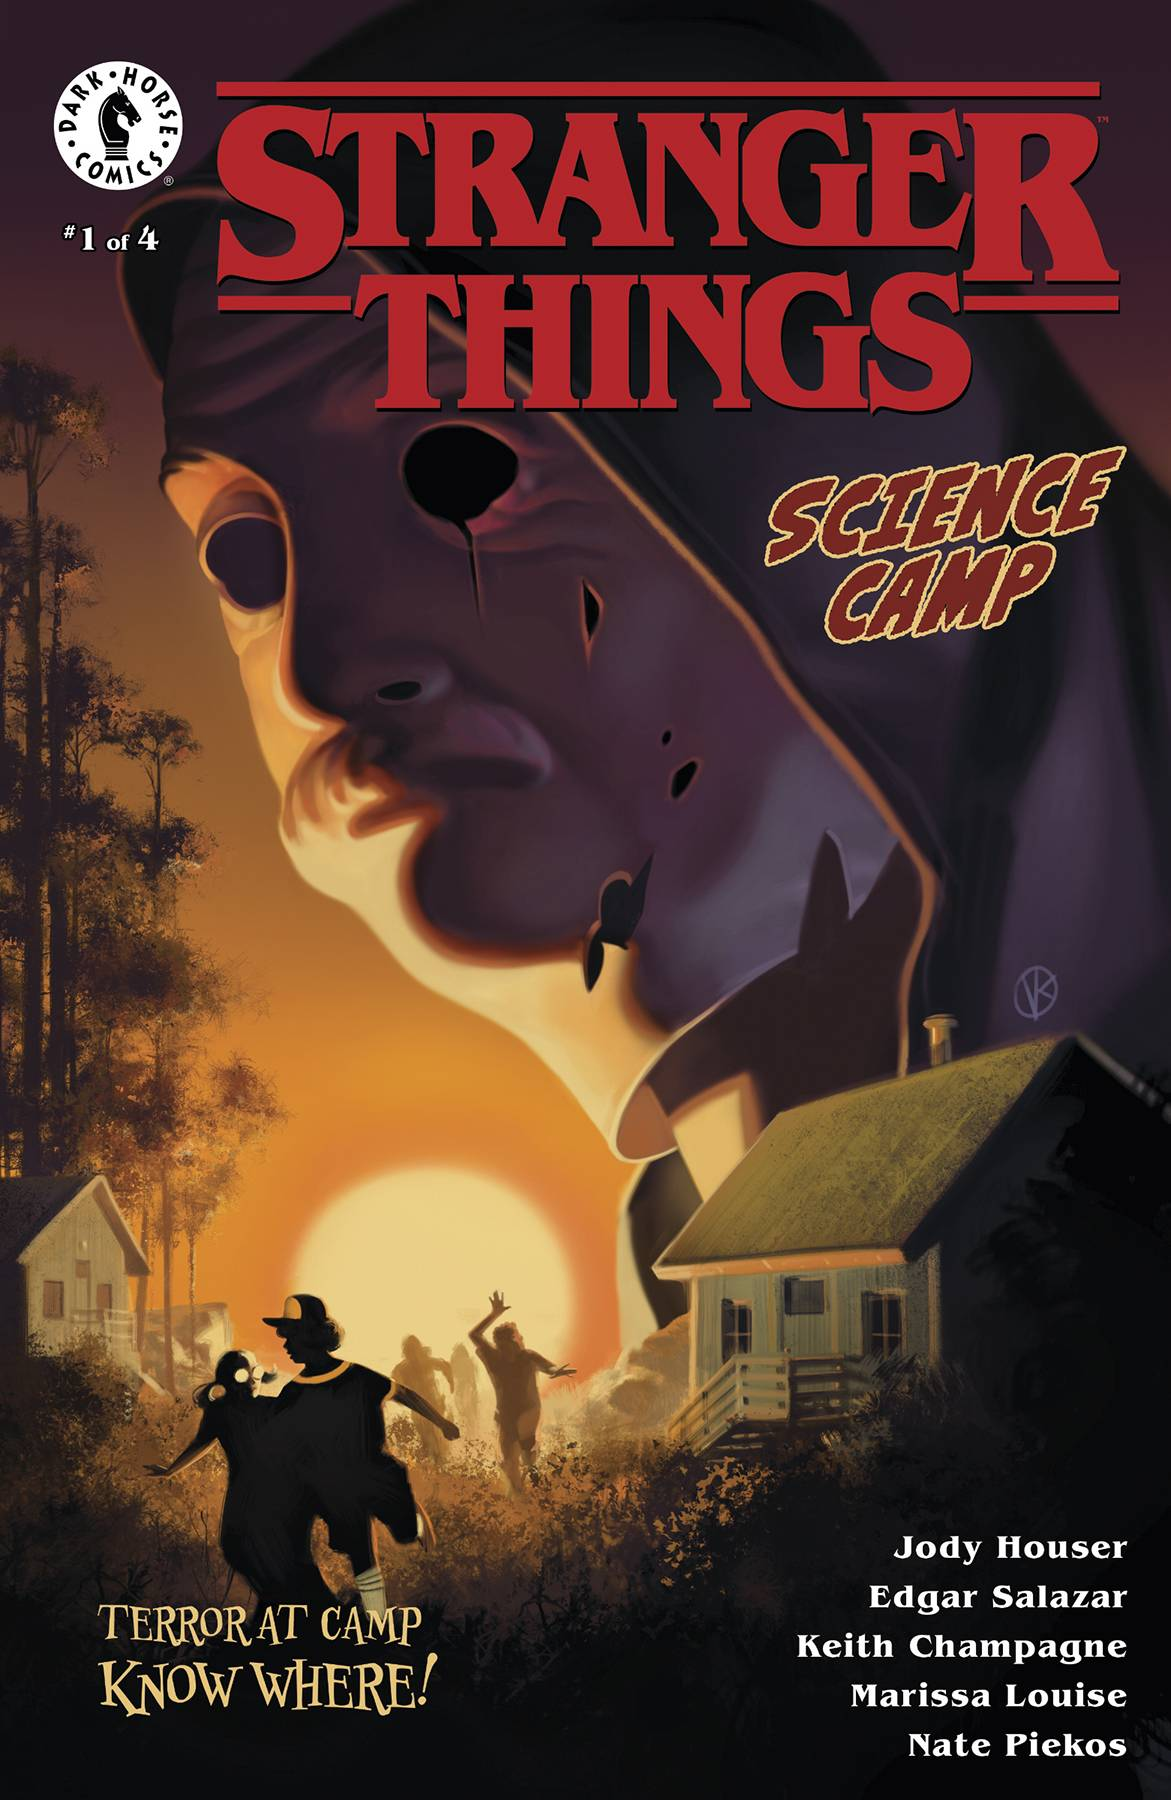 STRANGER THINGS: SCIENCE CAMP #1 (OF 4)